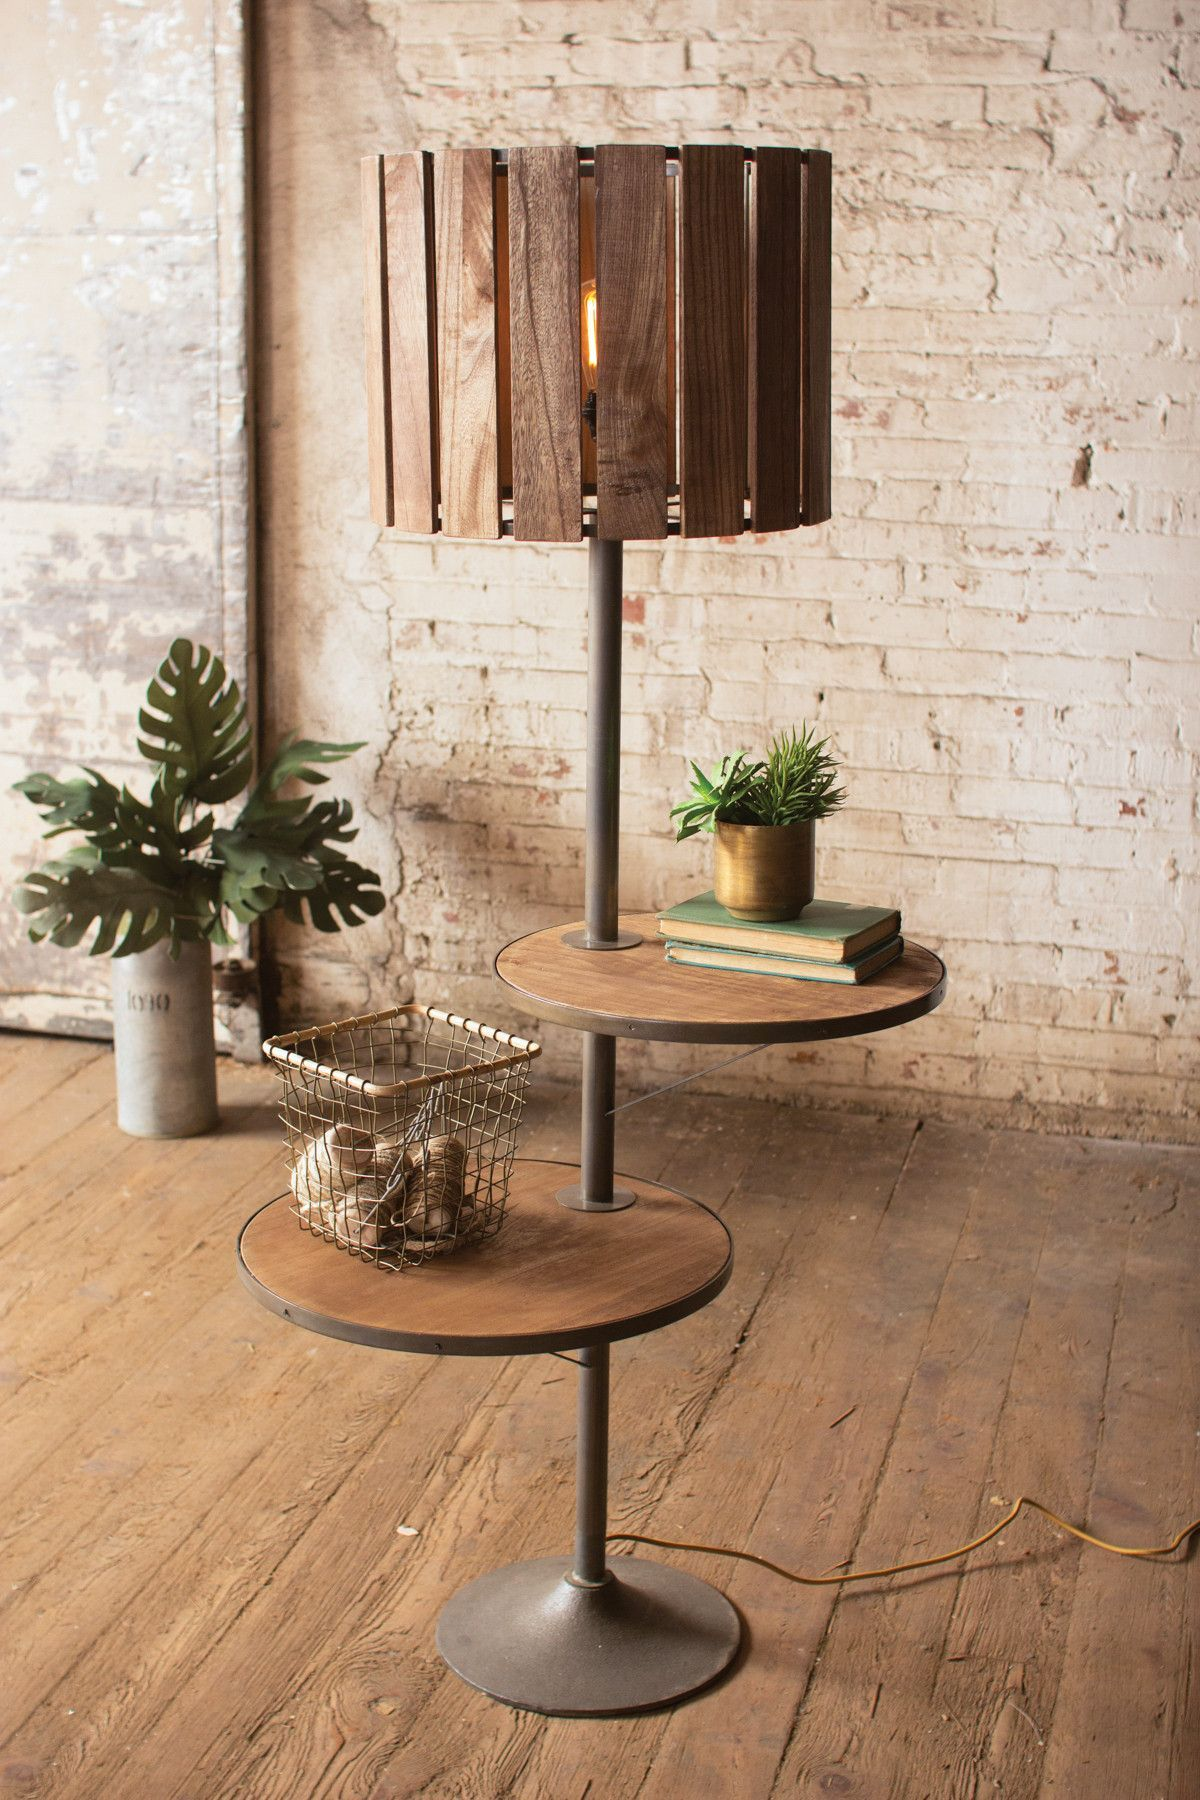 Industrial Floor Lamp With Shelves Visit Www Modernfloorlamps Net For More Inspiring Images And Dec Diy Floor Lamp Unique Floor Lamps Floor Lamp With Shelves